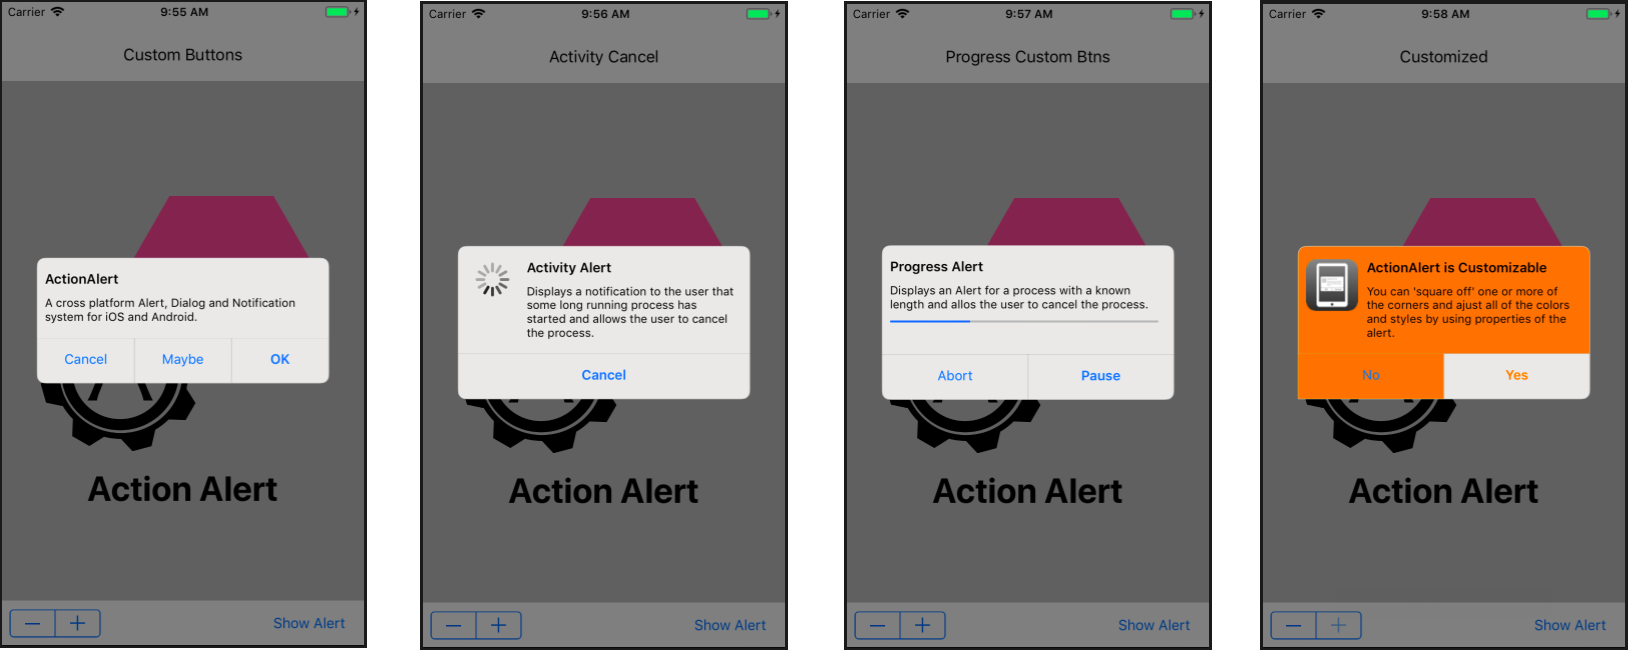 Appracatappra Action Components v4.5 for Xamarin